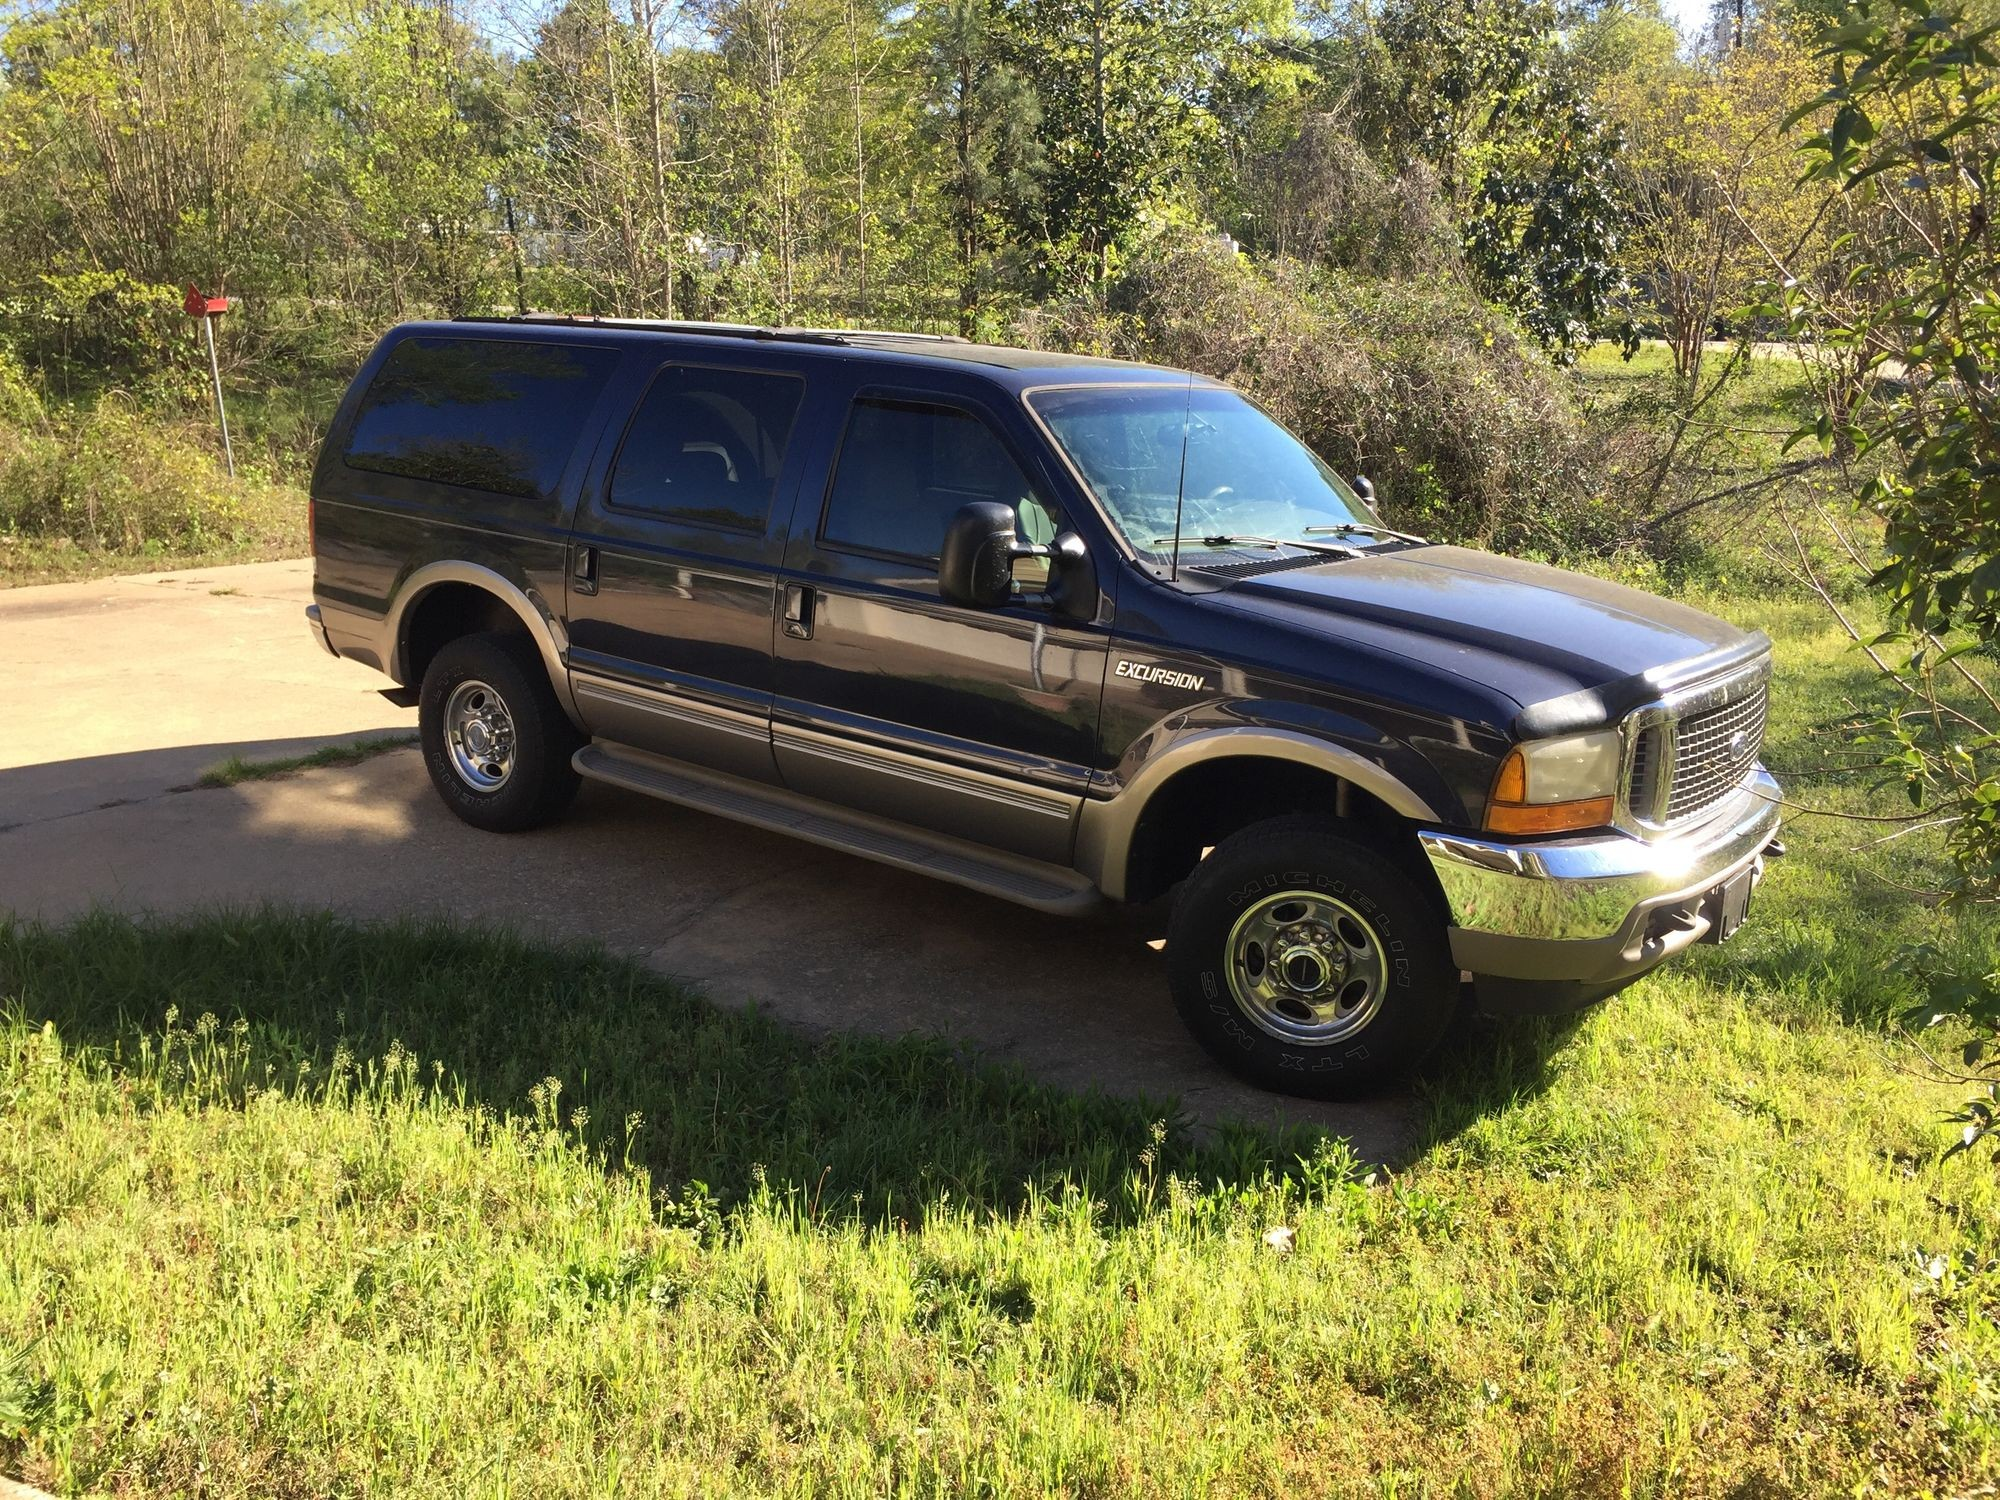 Ford Excursion Parts Diagram Armylifer S Excursion Maintenance Upgrade Thread ford Truck Of Ford Excursion Parts Diagram